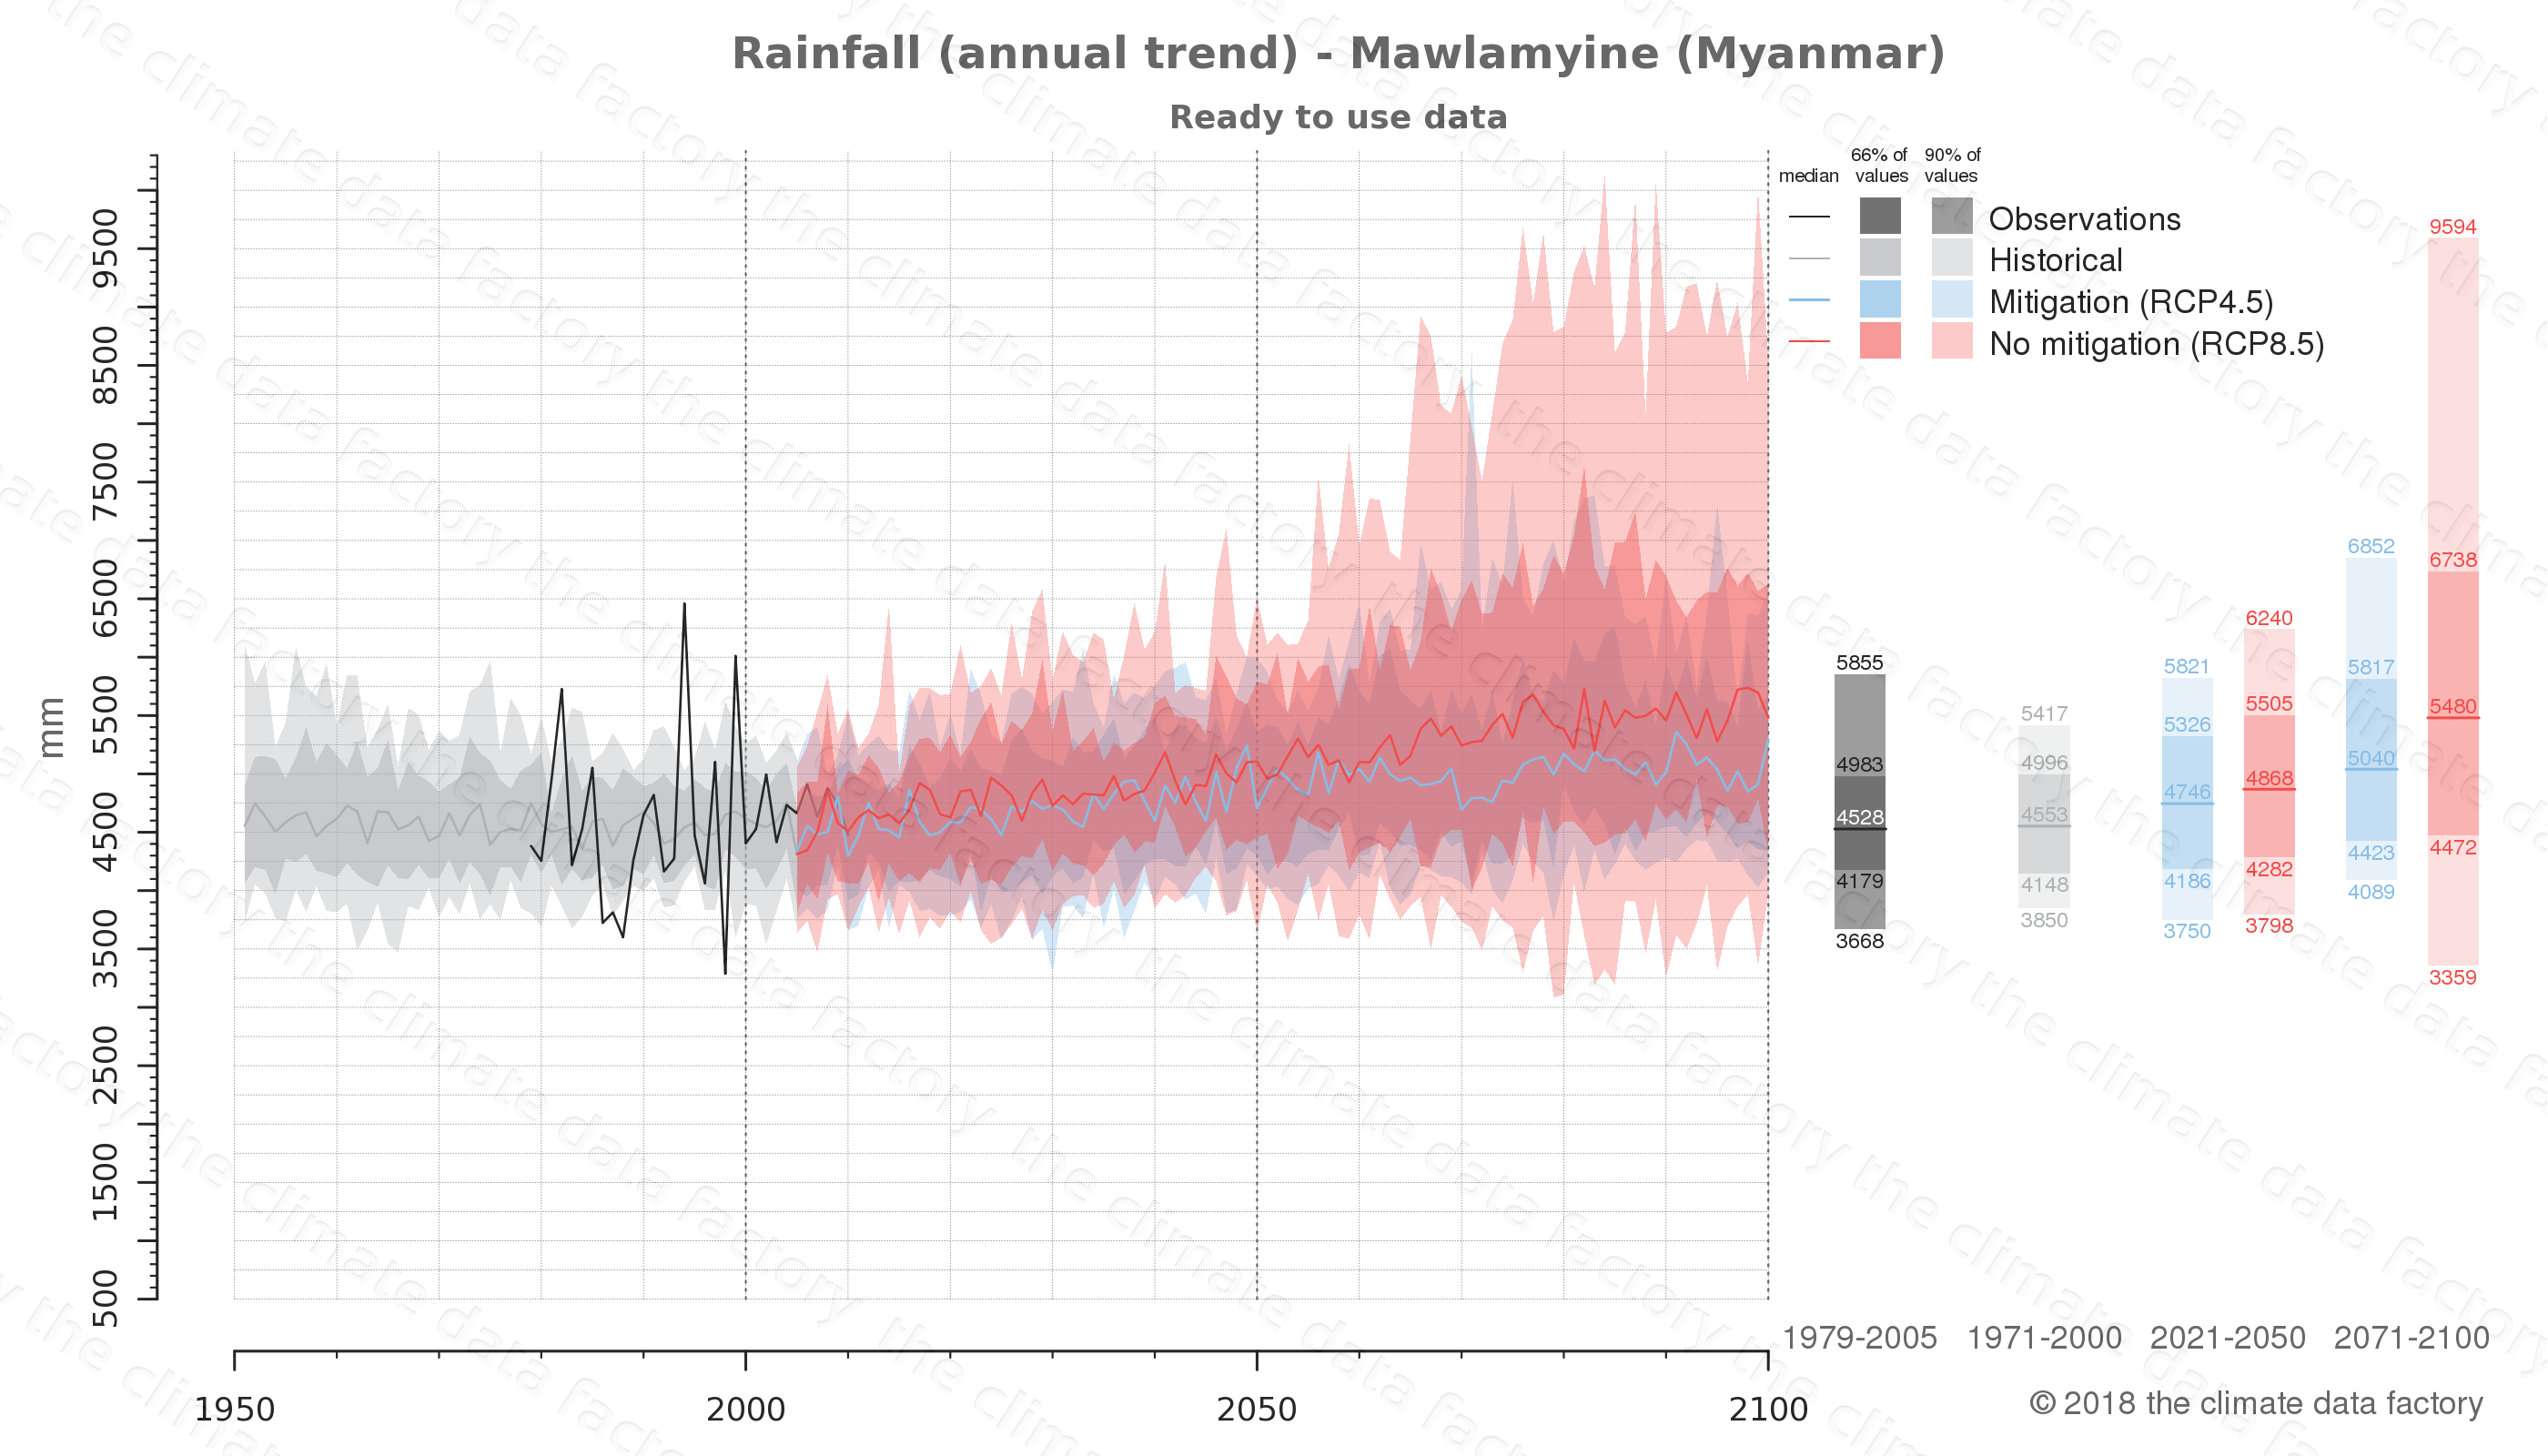 climate change data policy adaptation climate graph city data rainfall mawlamyine myanmar